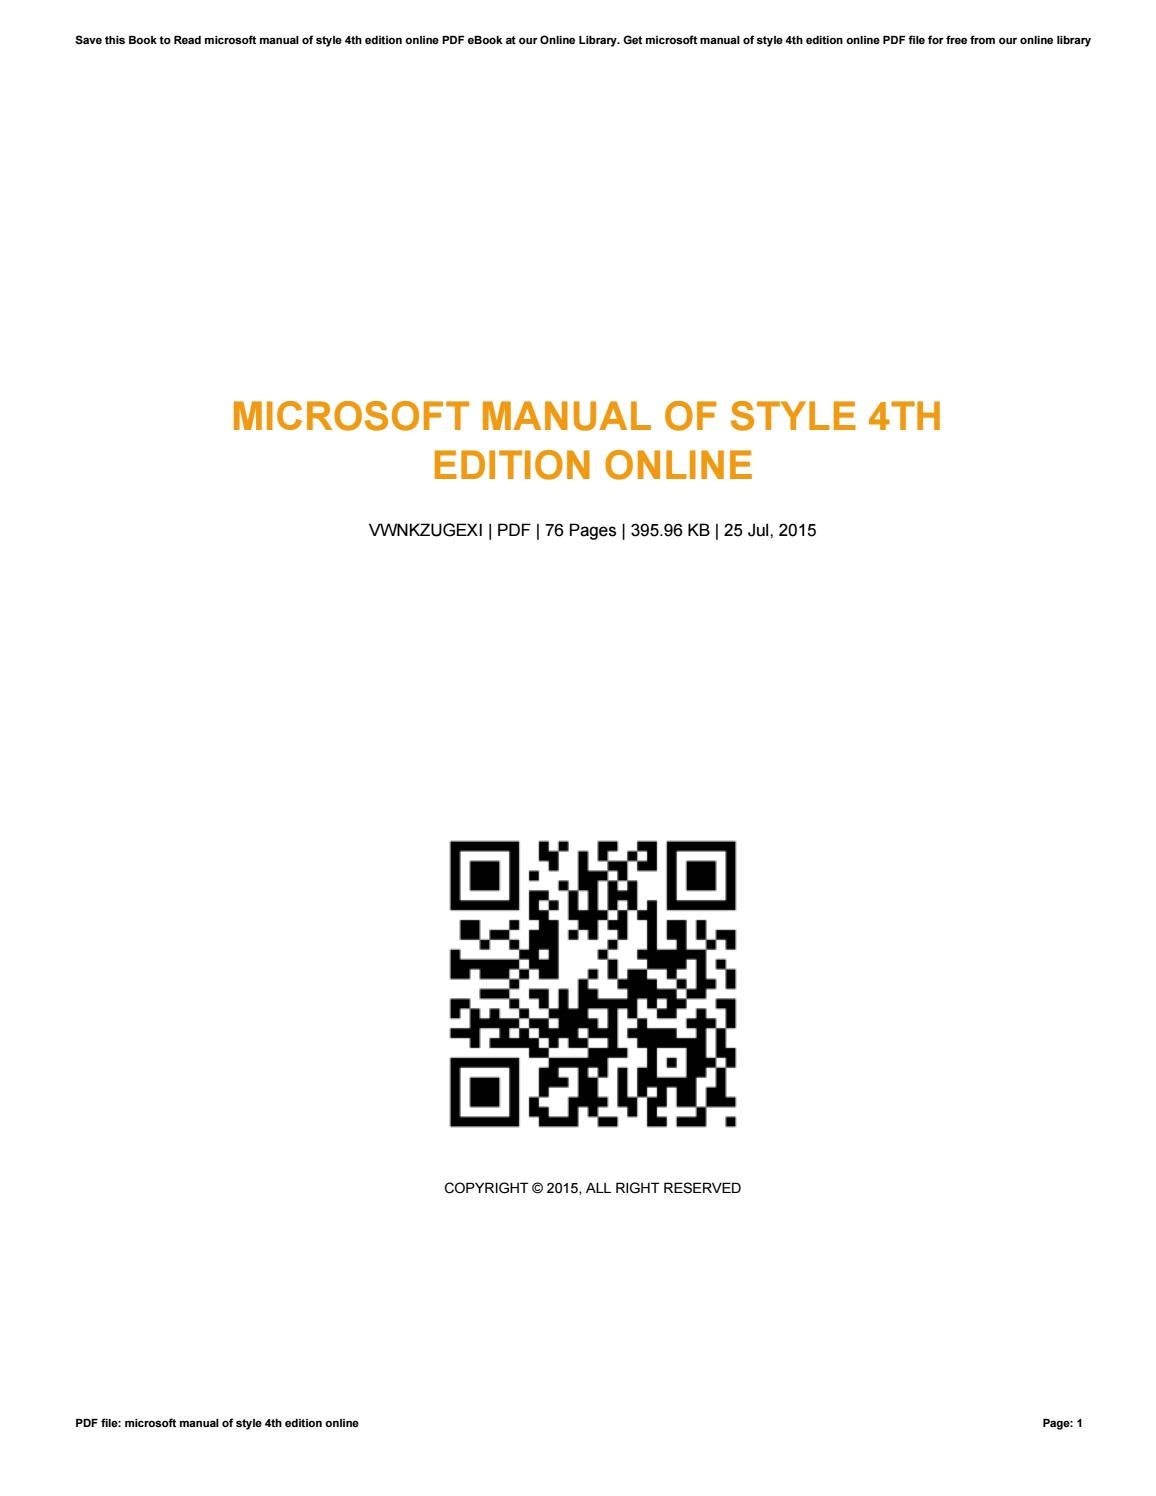 Microsoft manual of style 4th edition online by